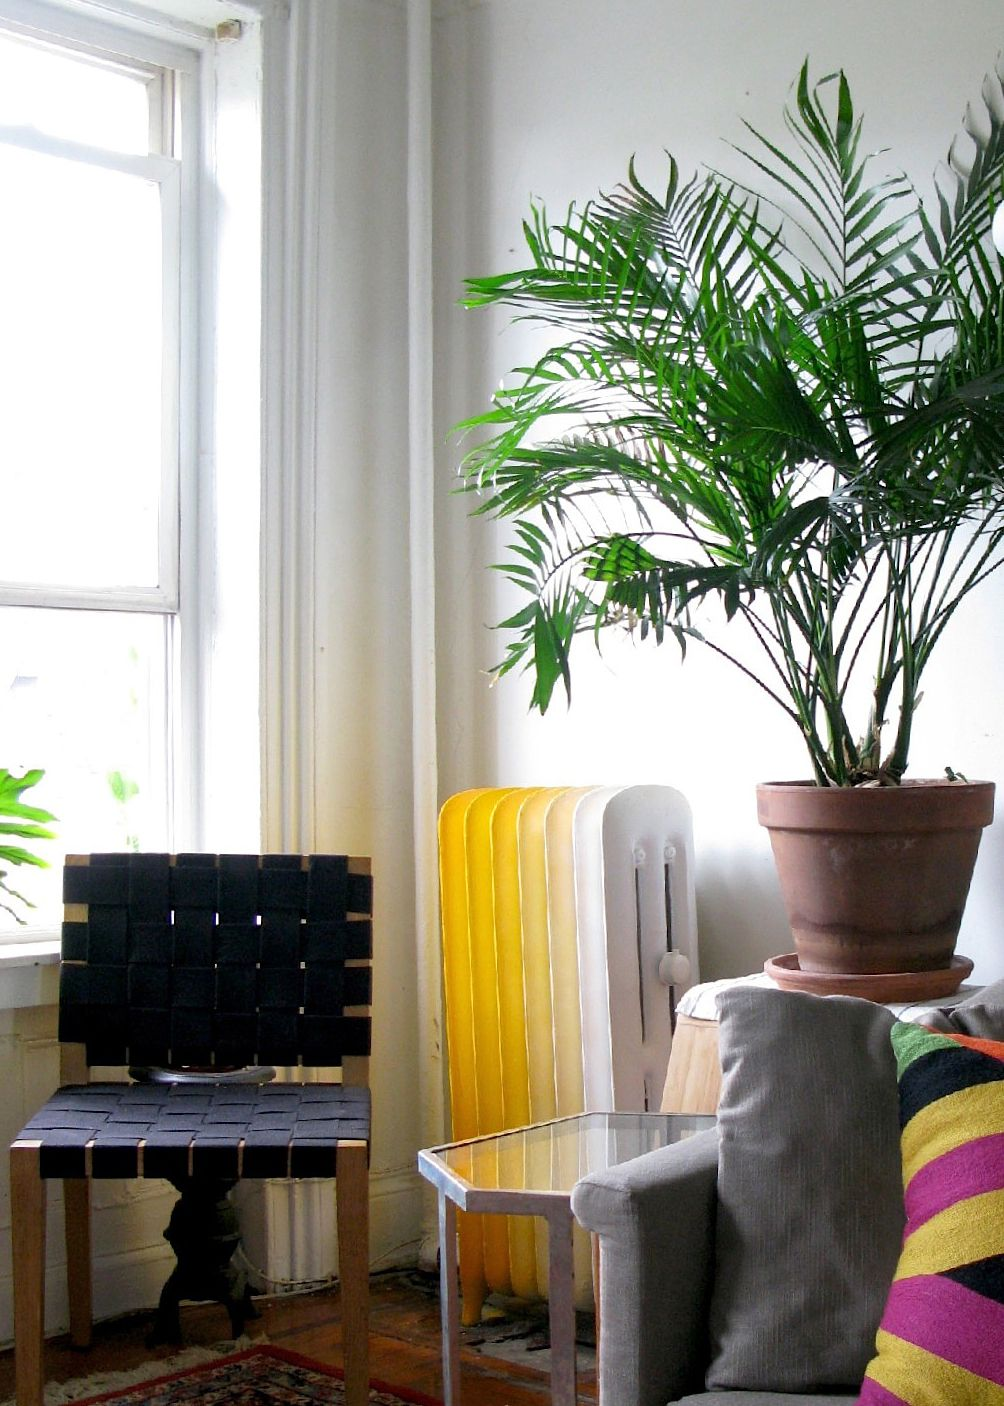 Circa-2009 apartment in Fort Greene. Just look at that radiator.